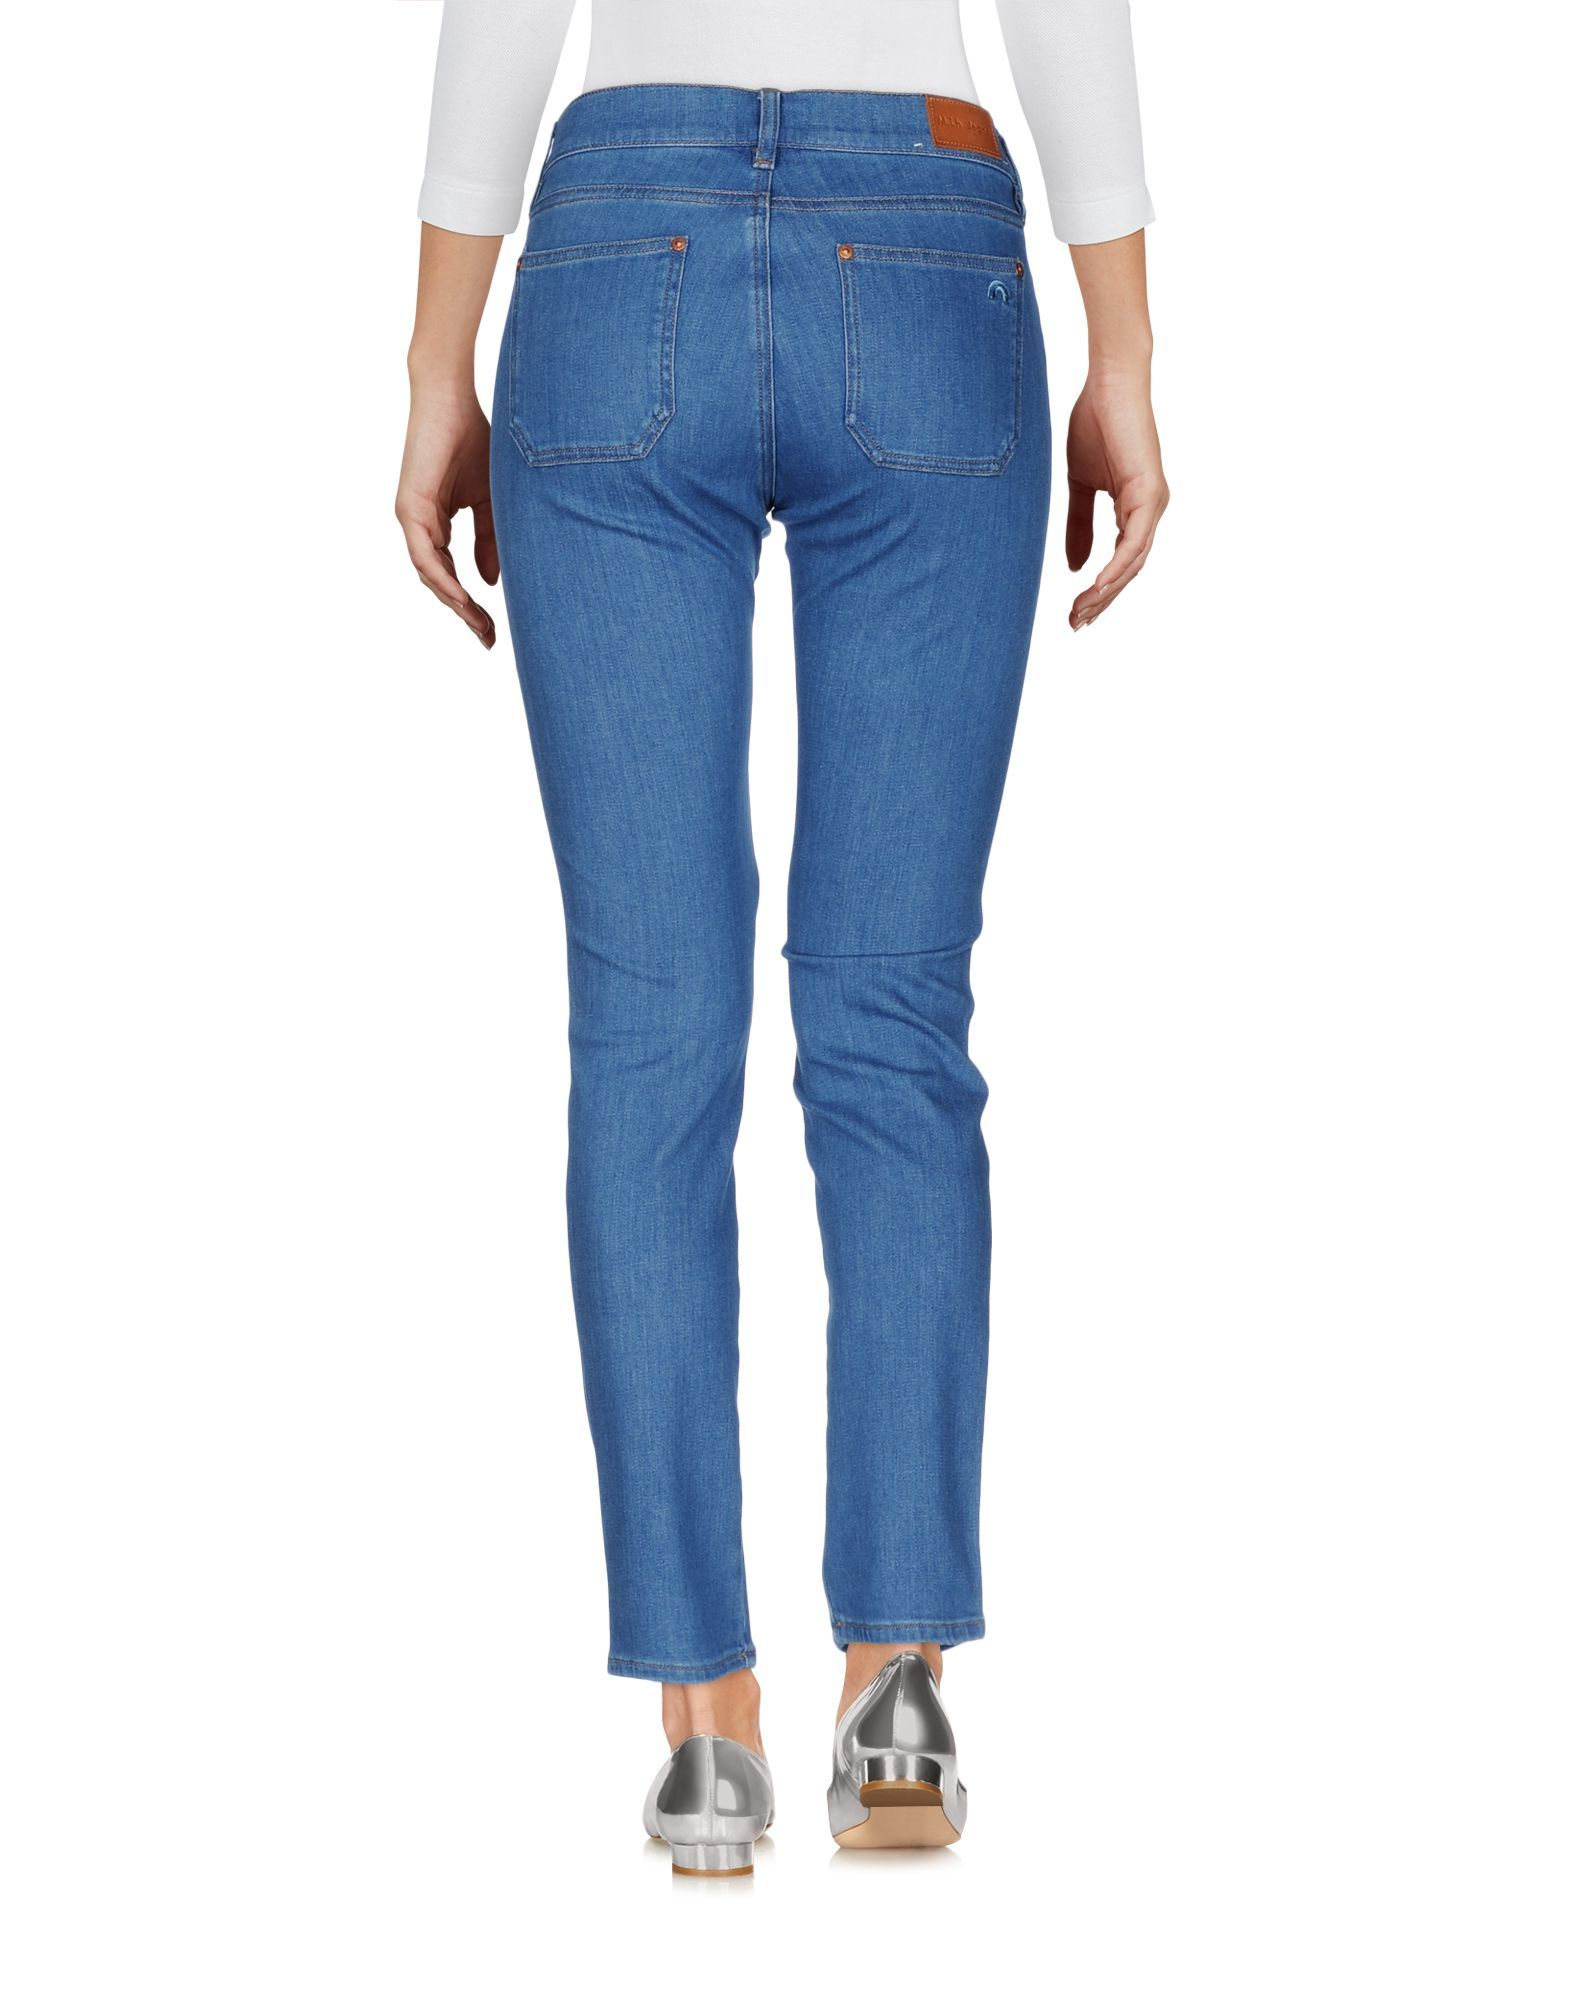 M.I.H Jeans Blue Cotton Skinny Jeans